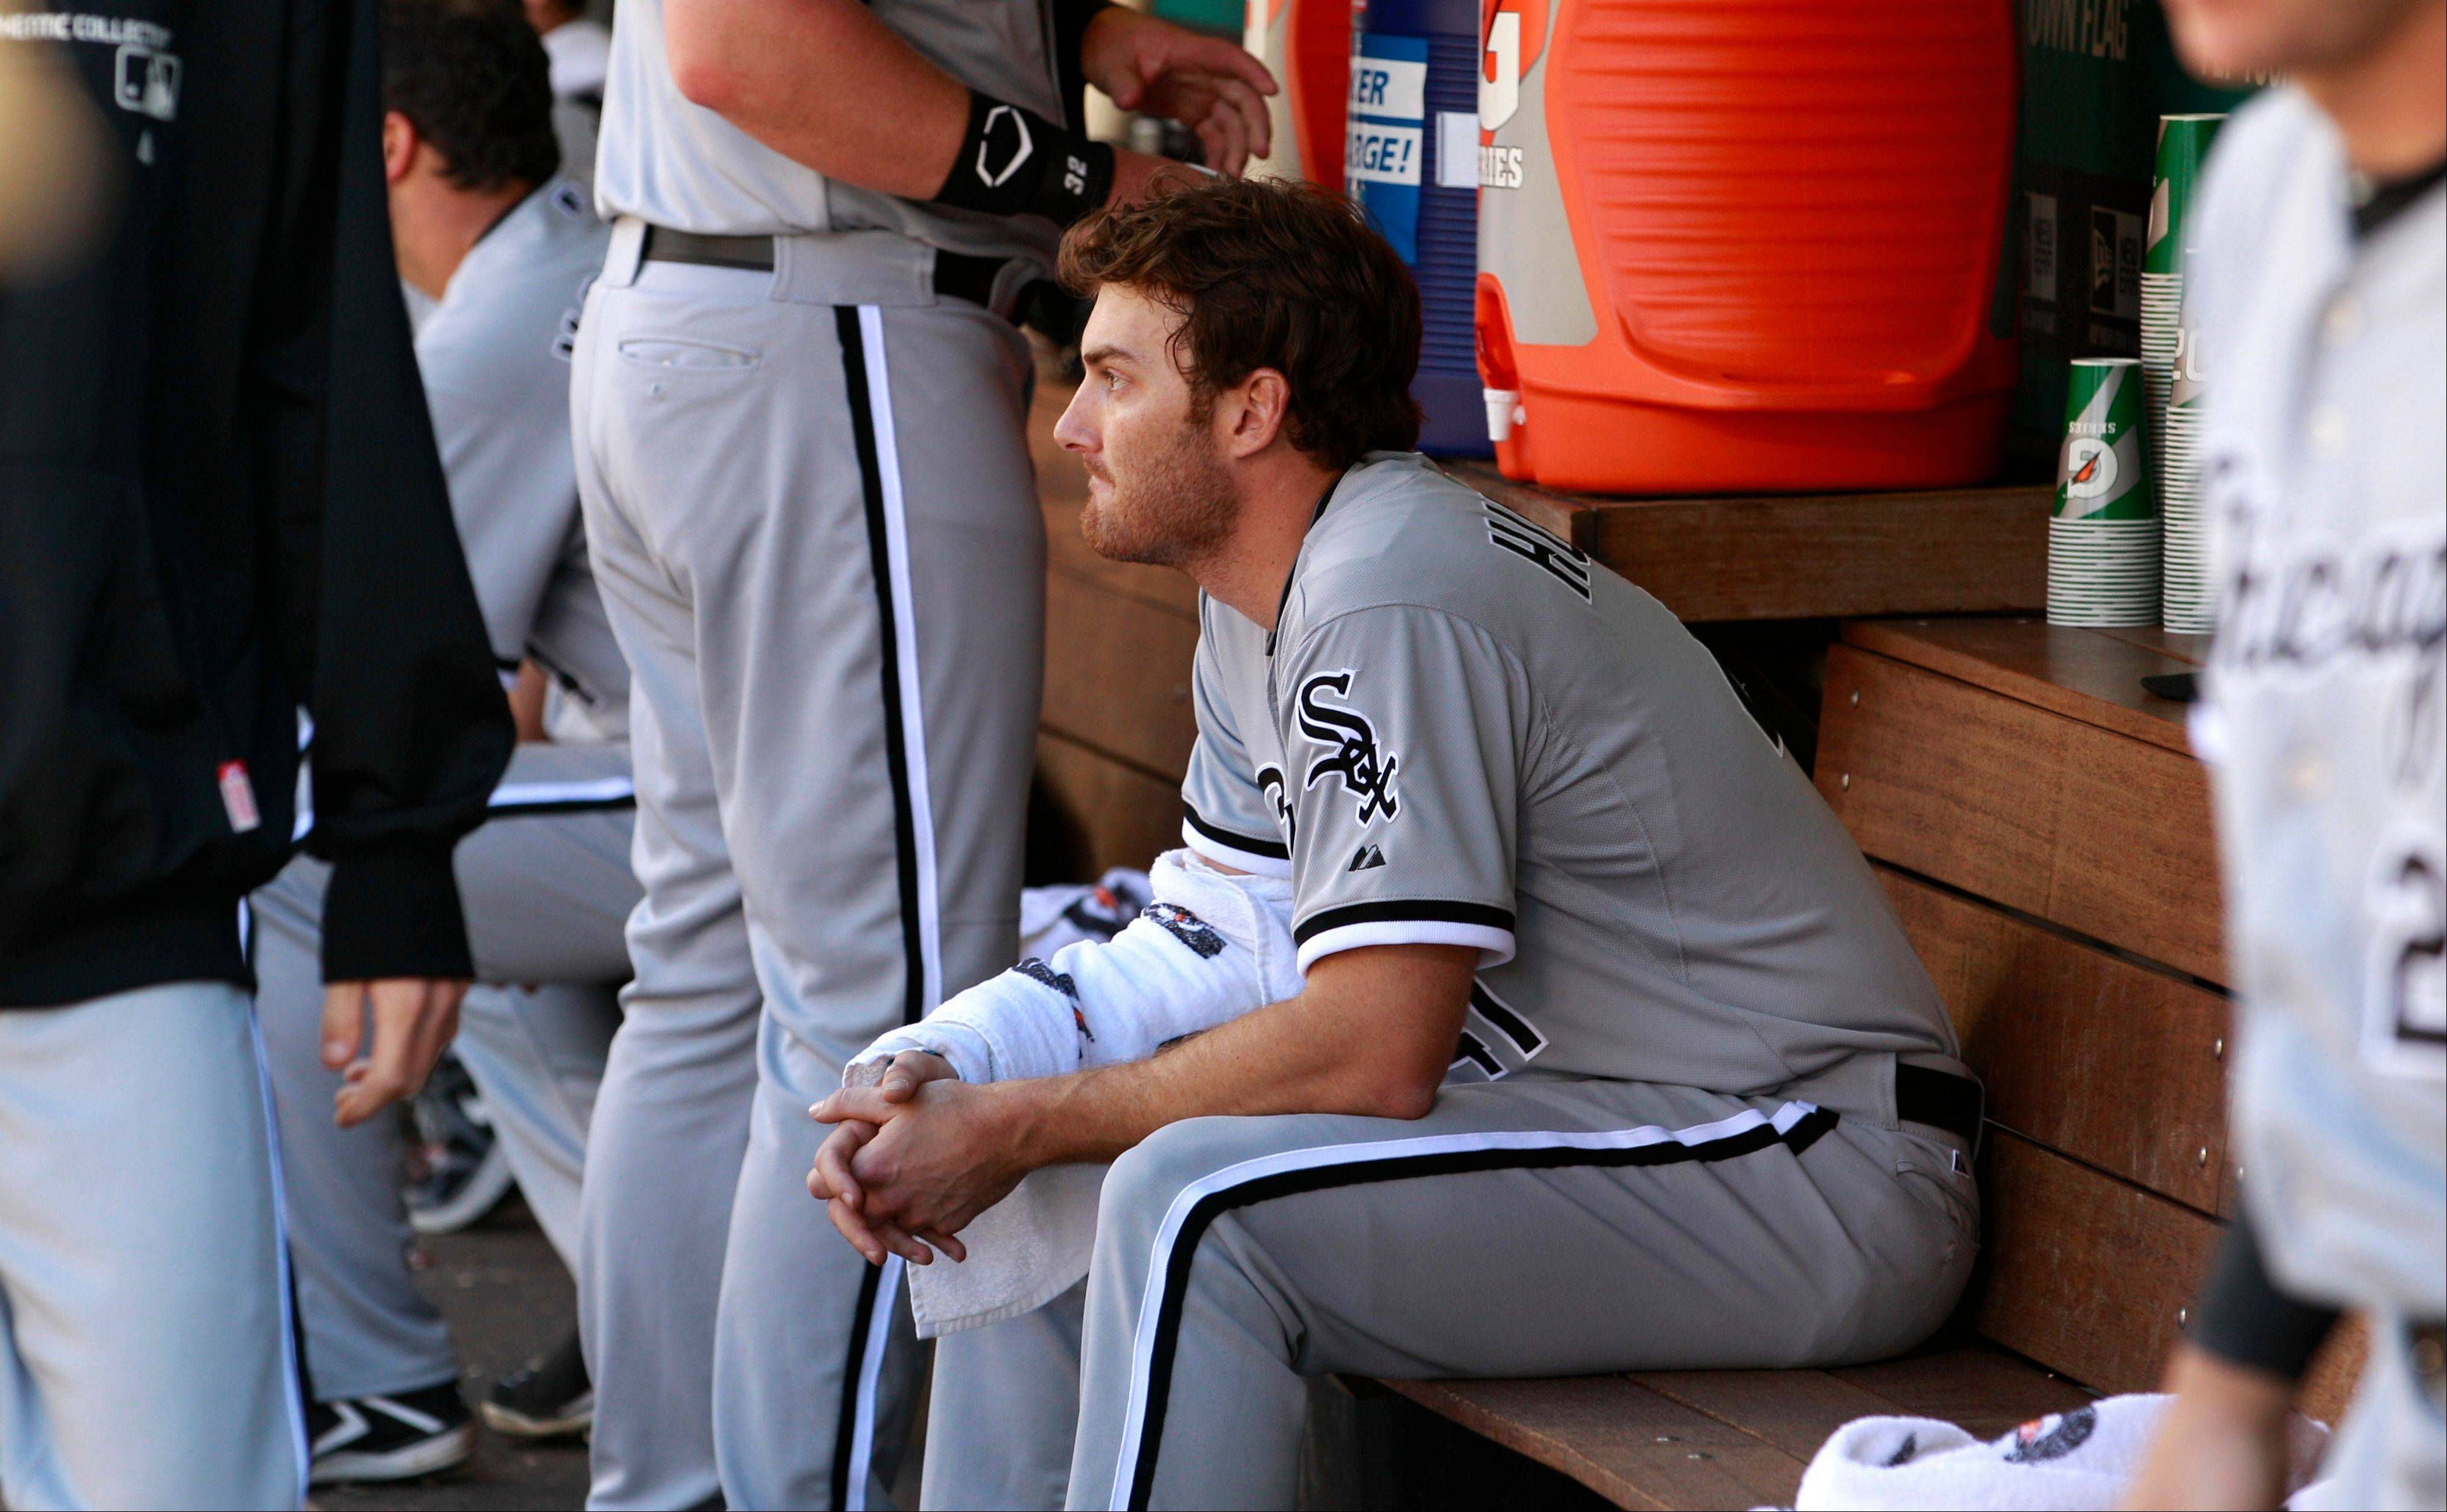 White Sox starting pitcher Phil Humber sits alone in the dugout Saturday before heading out for the ninth inning.